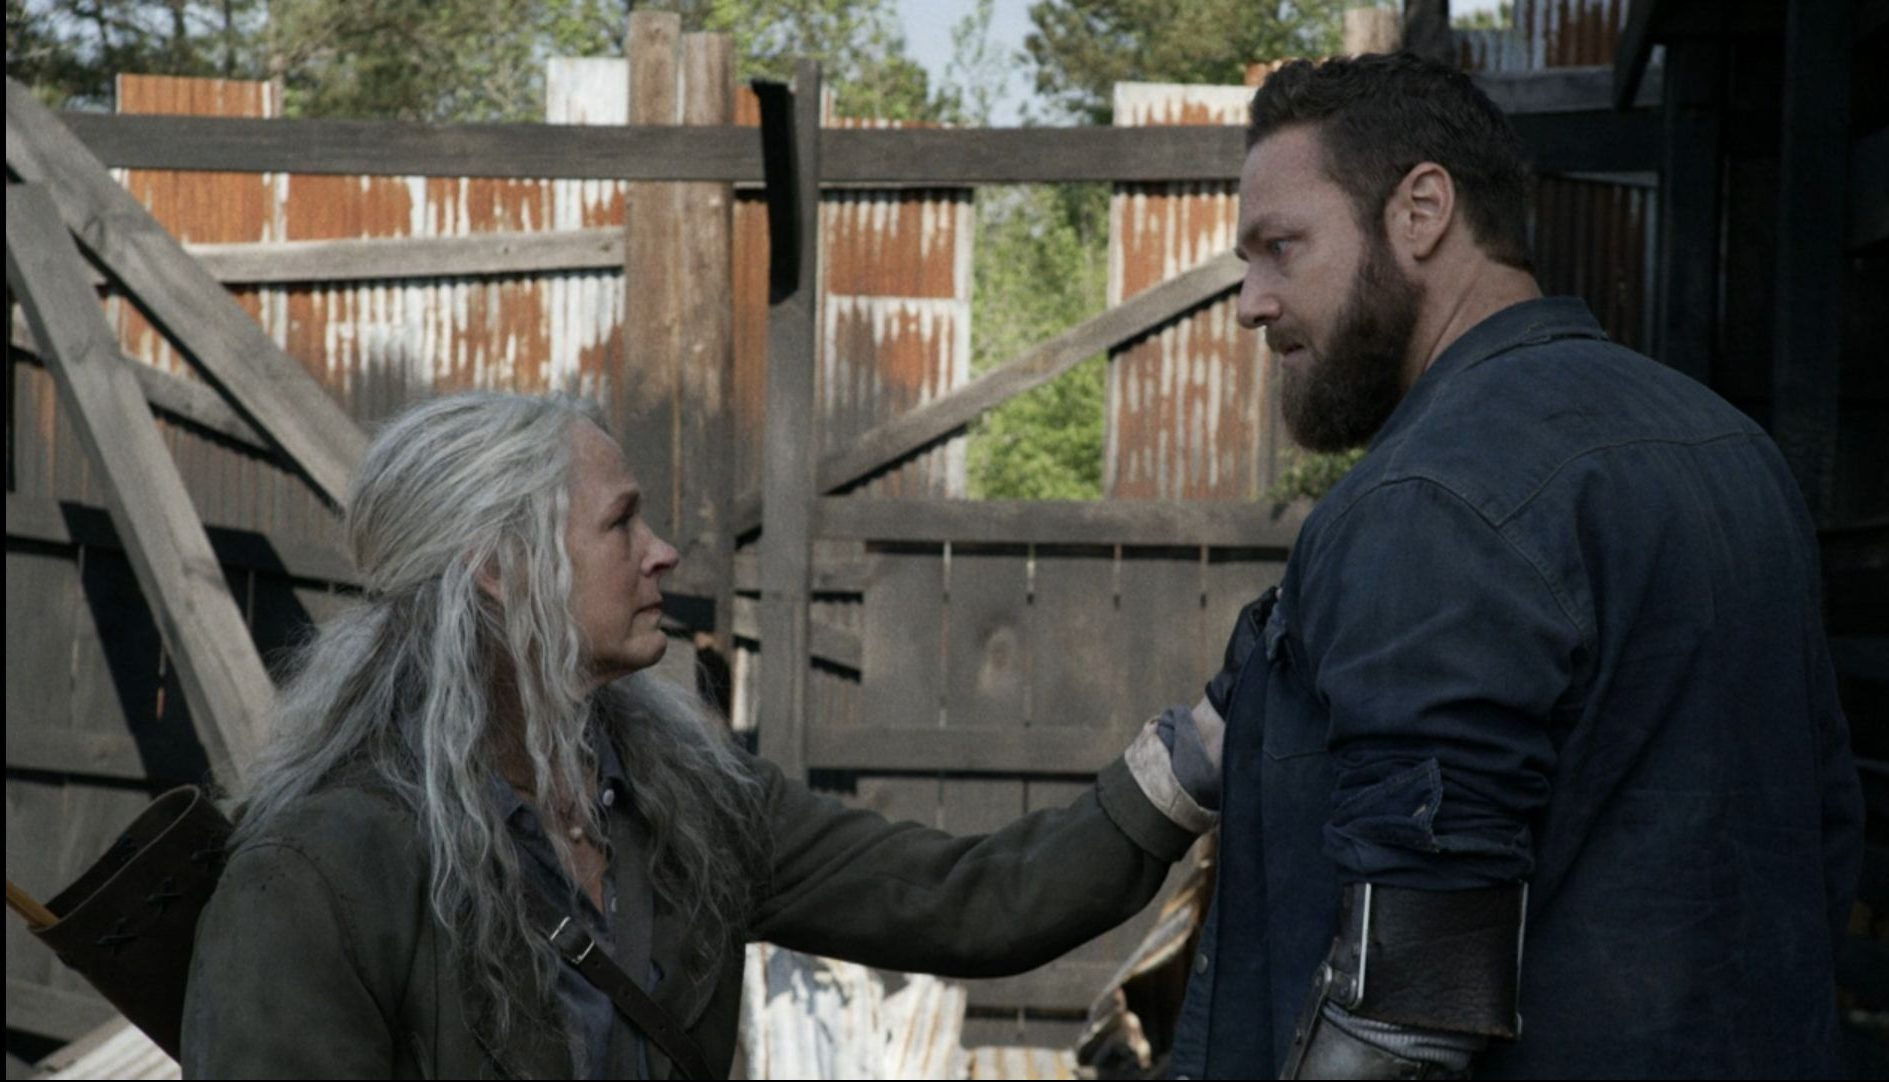 Events From Previous Episode That May Affect The Walking Dead Season 11 Episode 6